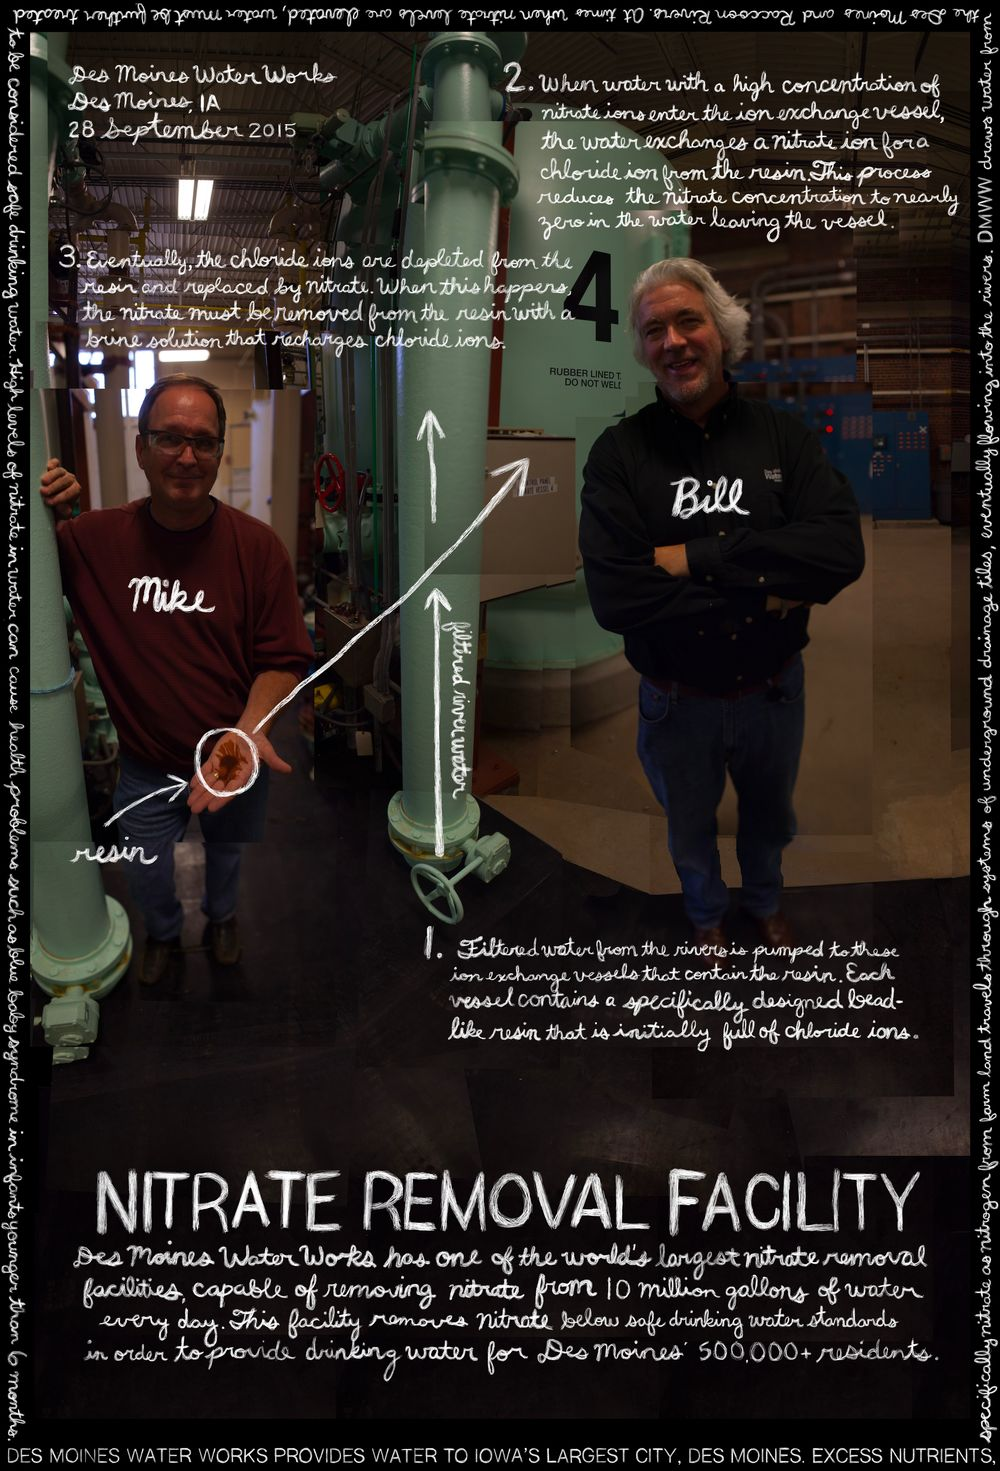 PL_Ames_NitrateRemovalFacility_small.jpg